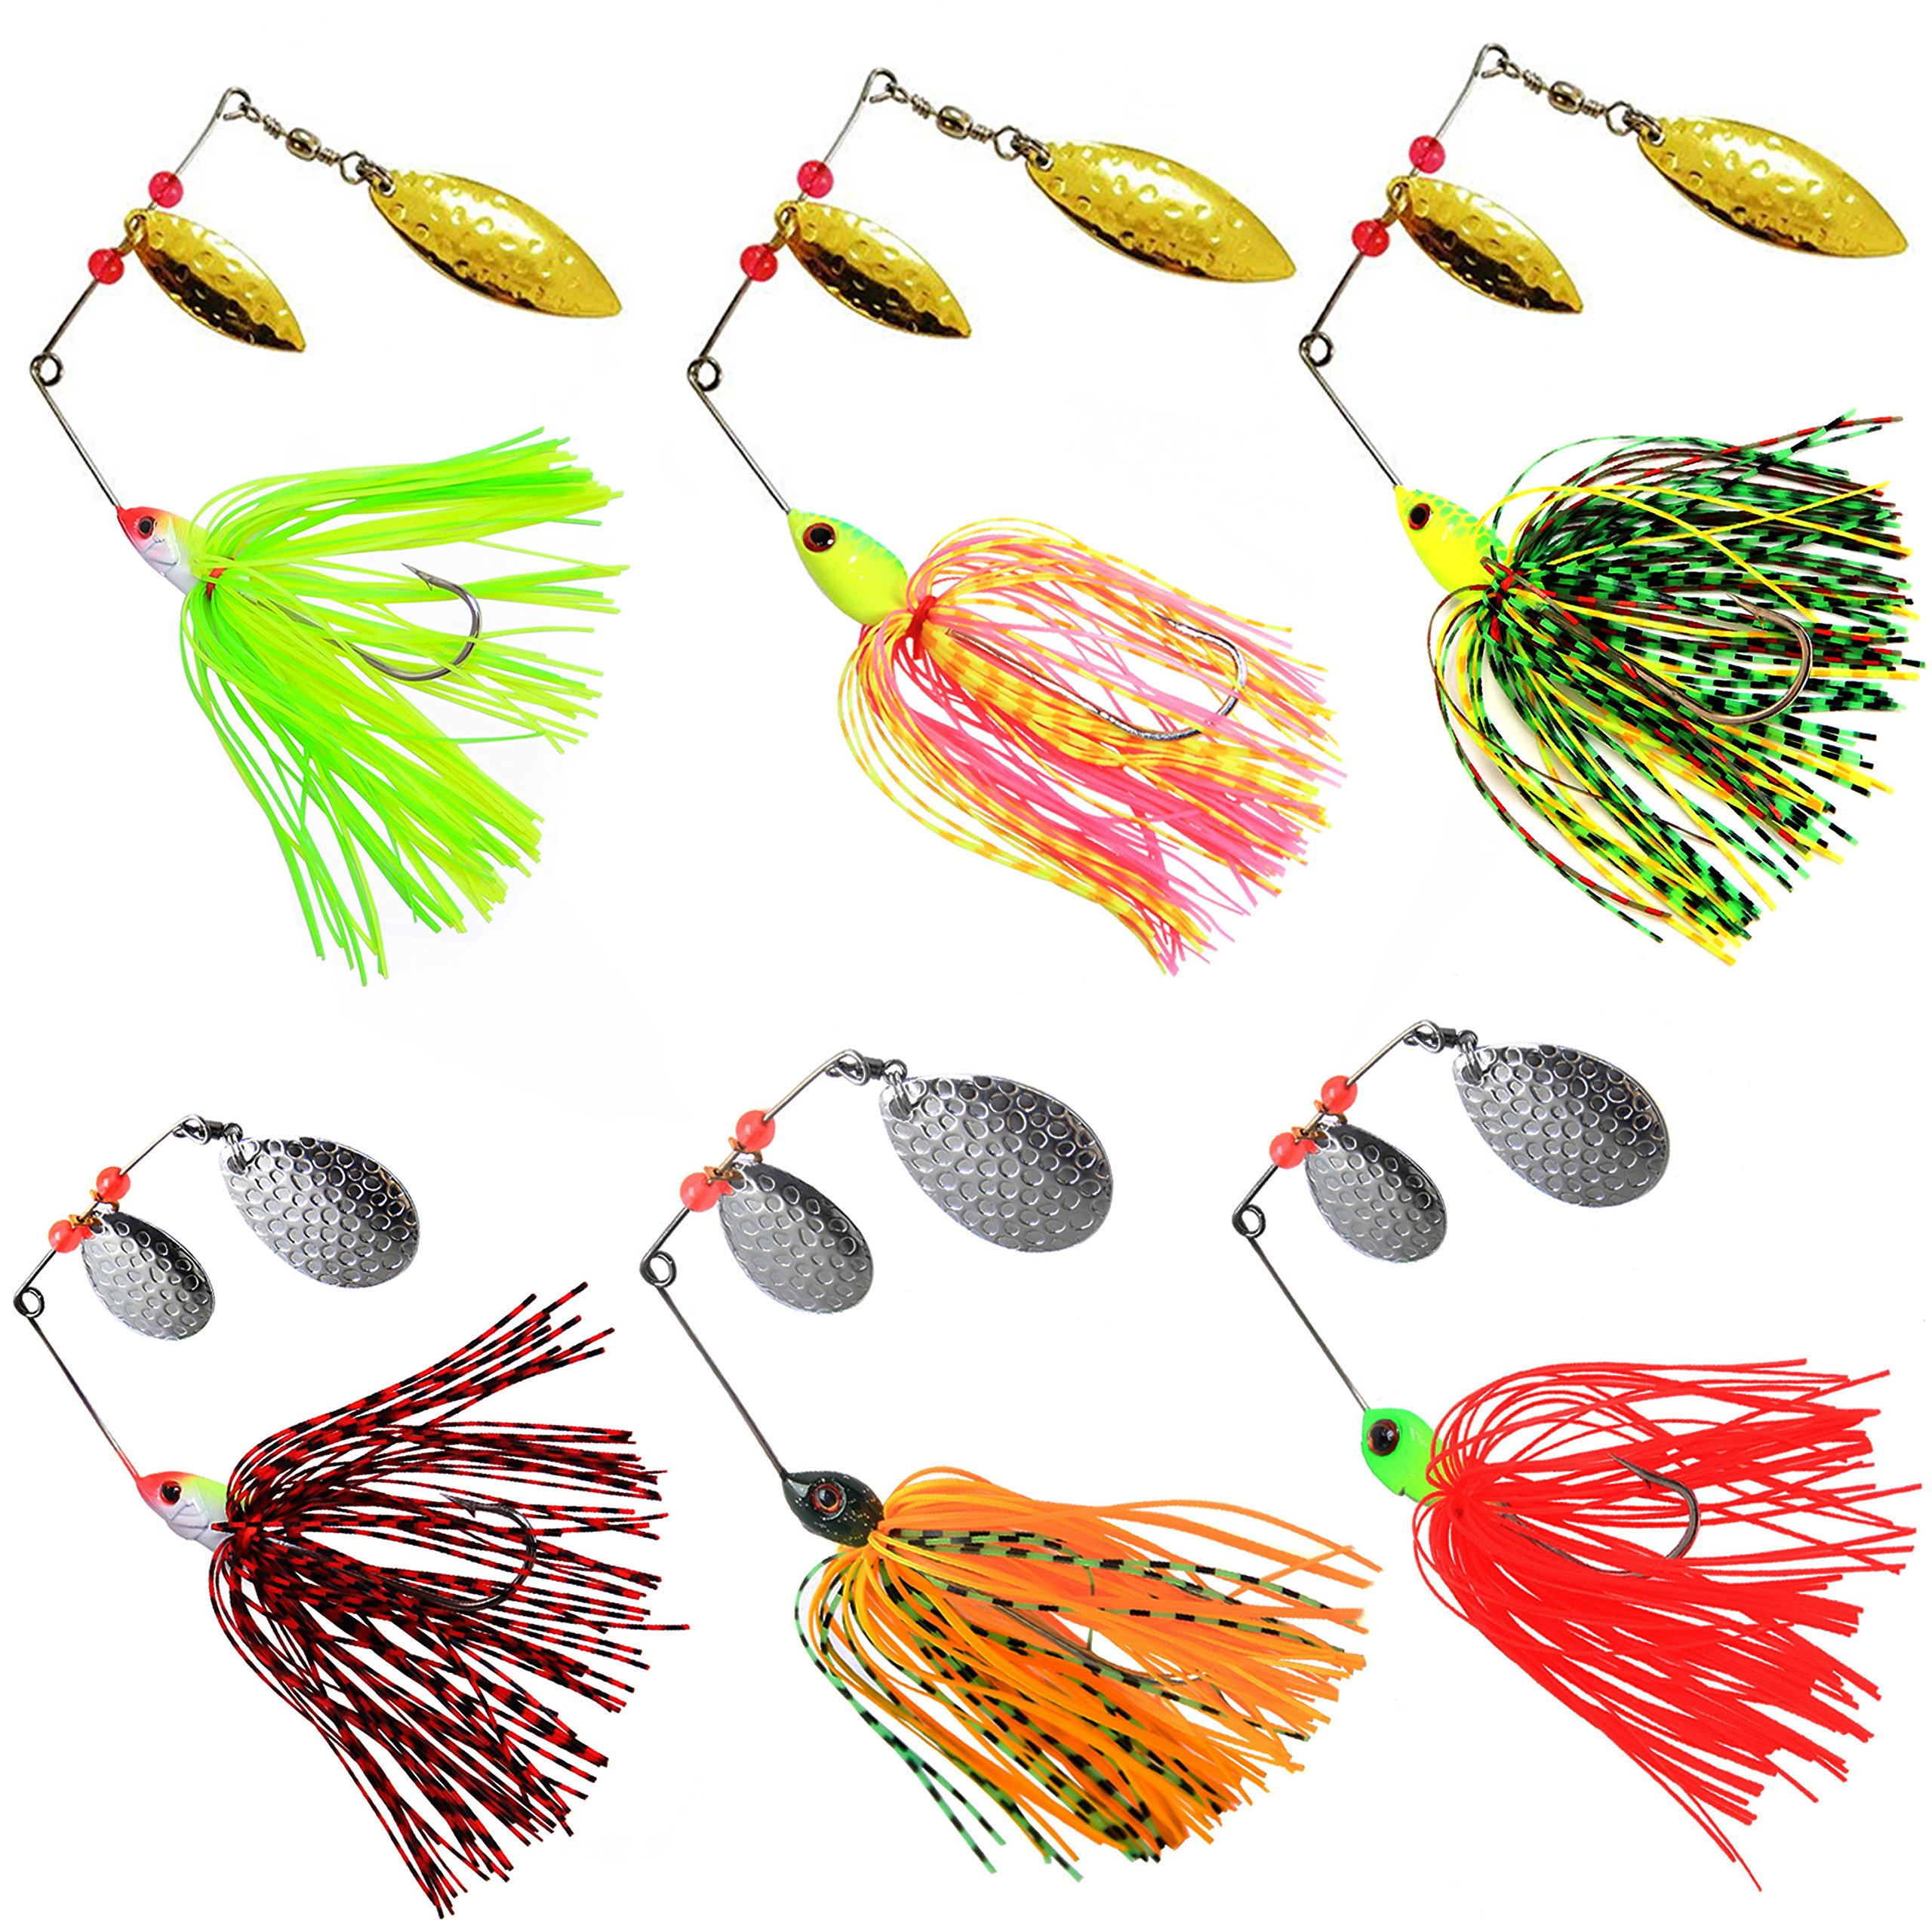 Fishing Spinner Baits Kit Hard Metal Spinnerbait Jig Lure Kit Bass Pike (6pcs Spinner Baits) by Shaddock Fishing